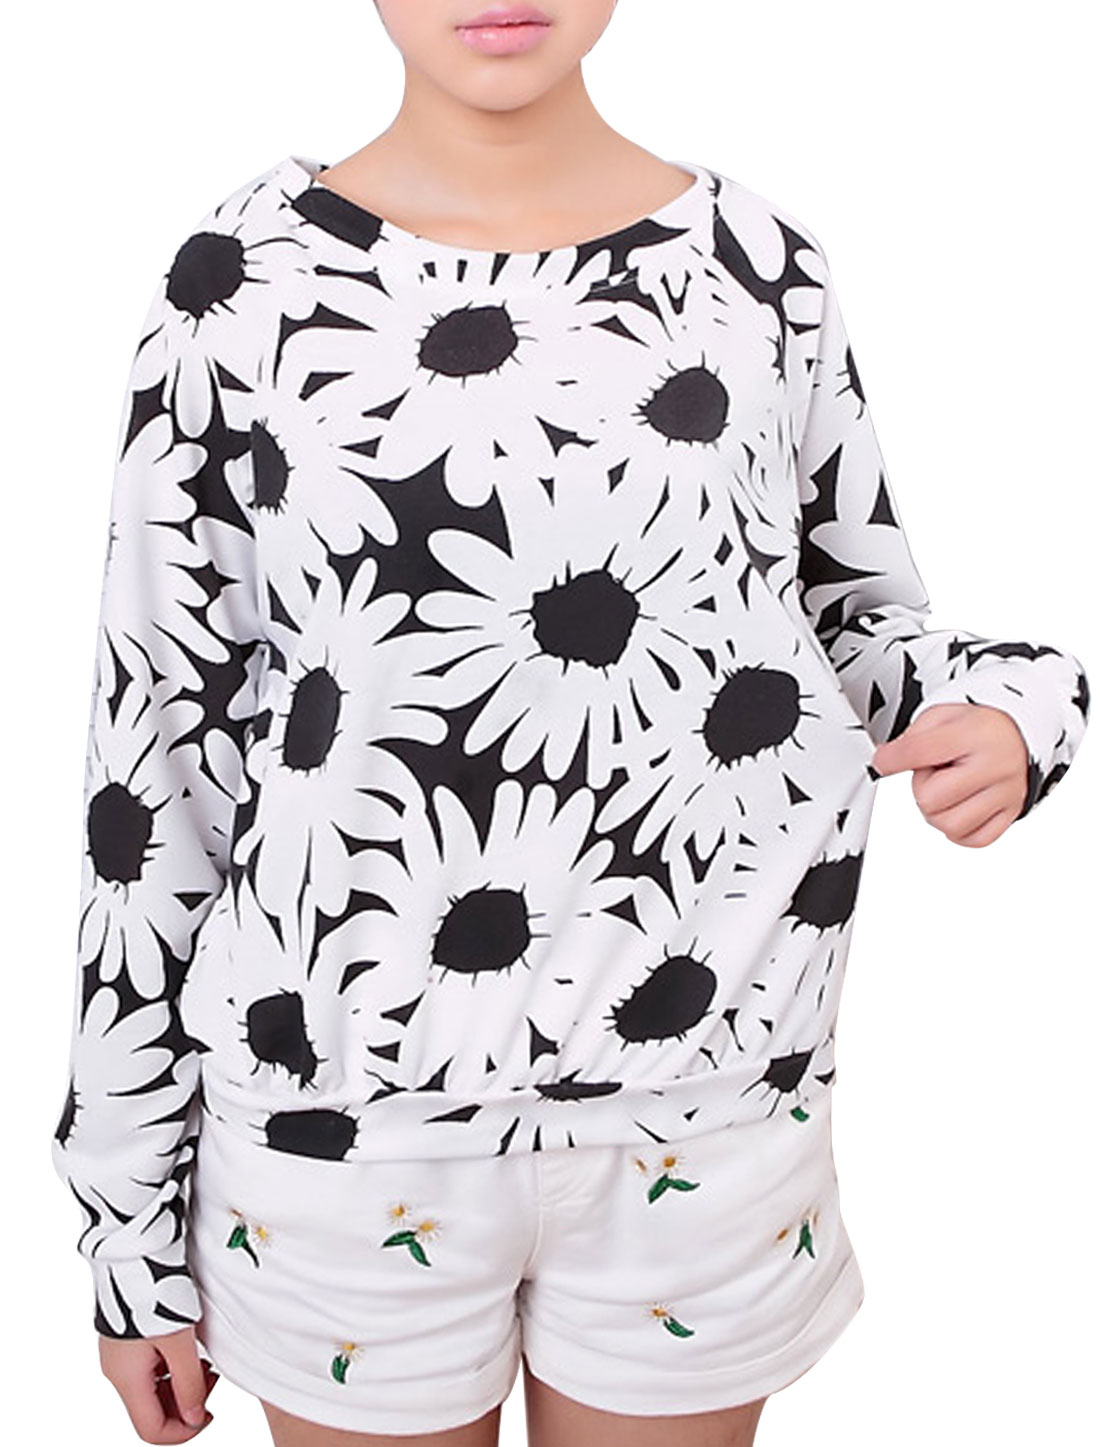 Lady Long Raglan Sleeve Floral Prints Sweatshirt White Black S